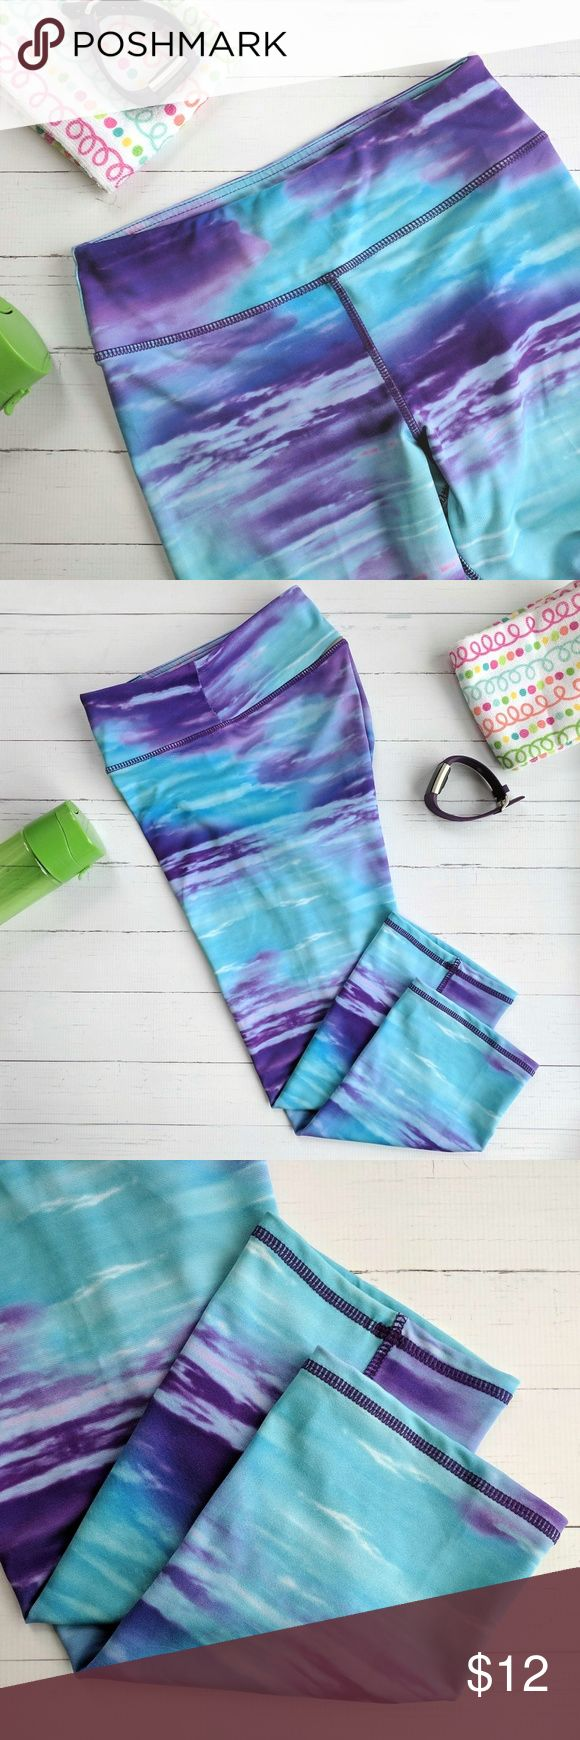 Kyodan Blue Purple Ombre Leggings Kyodan Blue Purple Ombre Leggings Fun ombre print Size XS These are made of a thicker material. Great condition! Kyodan Pants Leggings